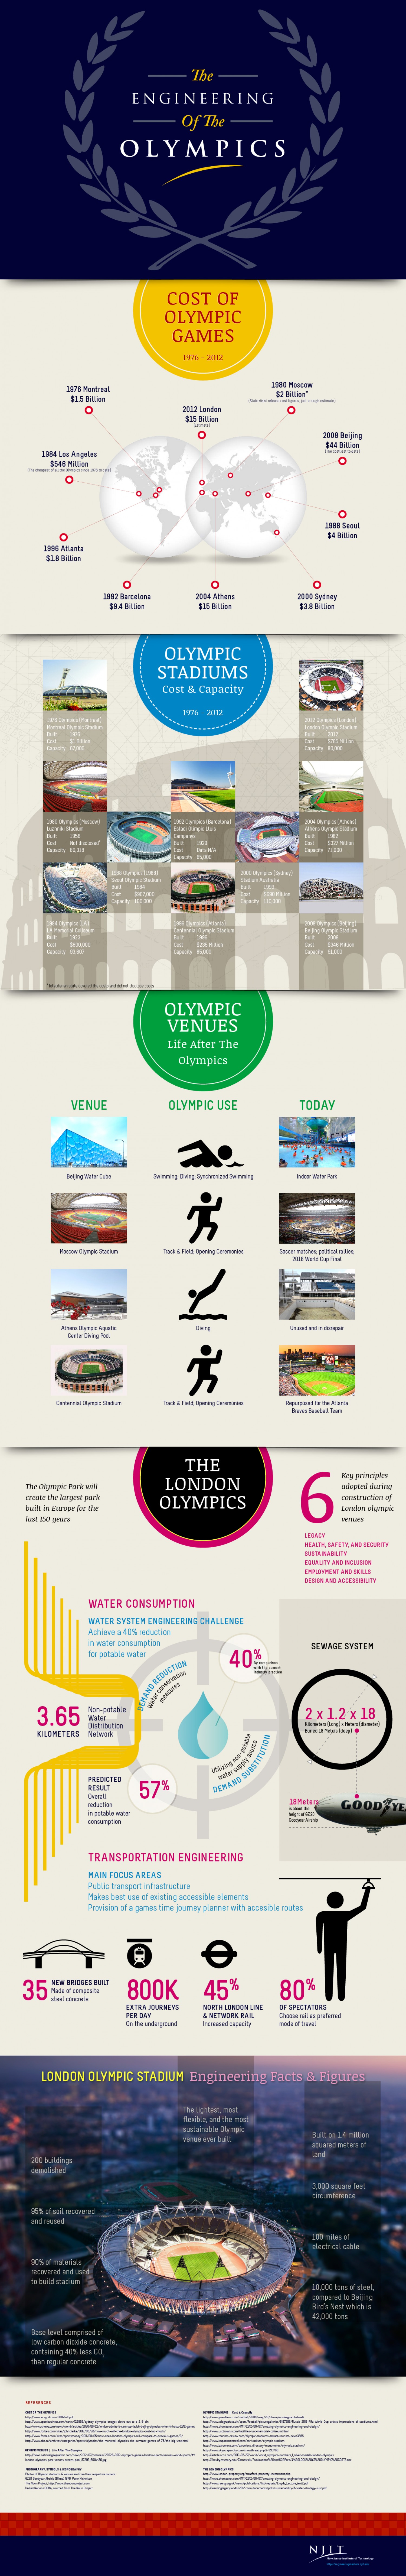 12. The Engineering of the Olympics